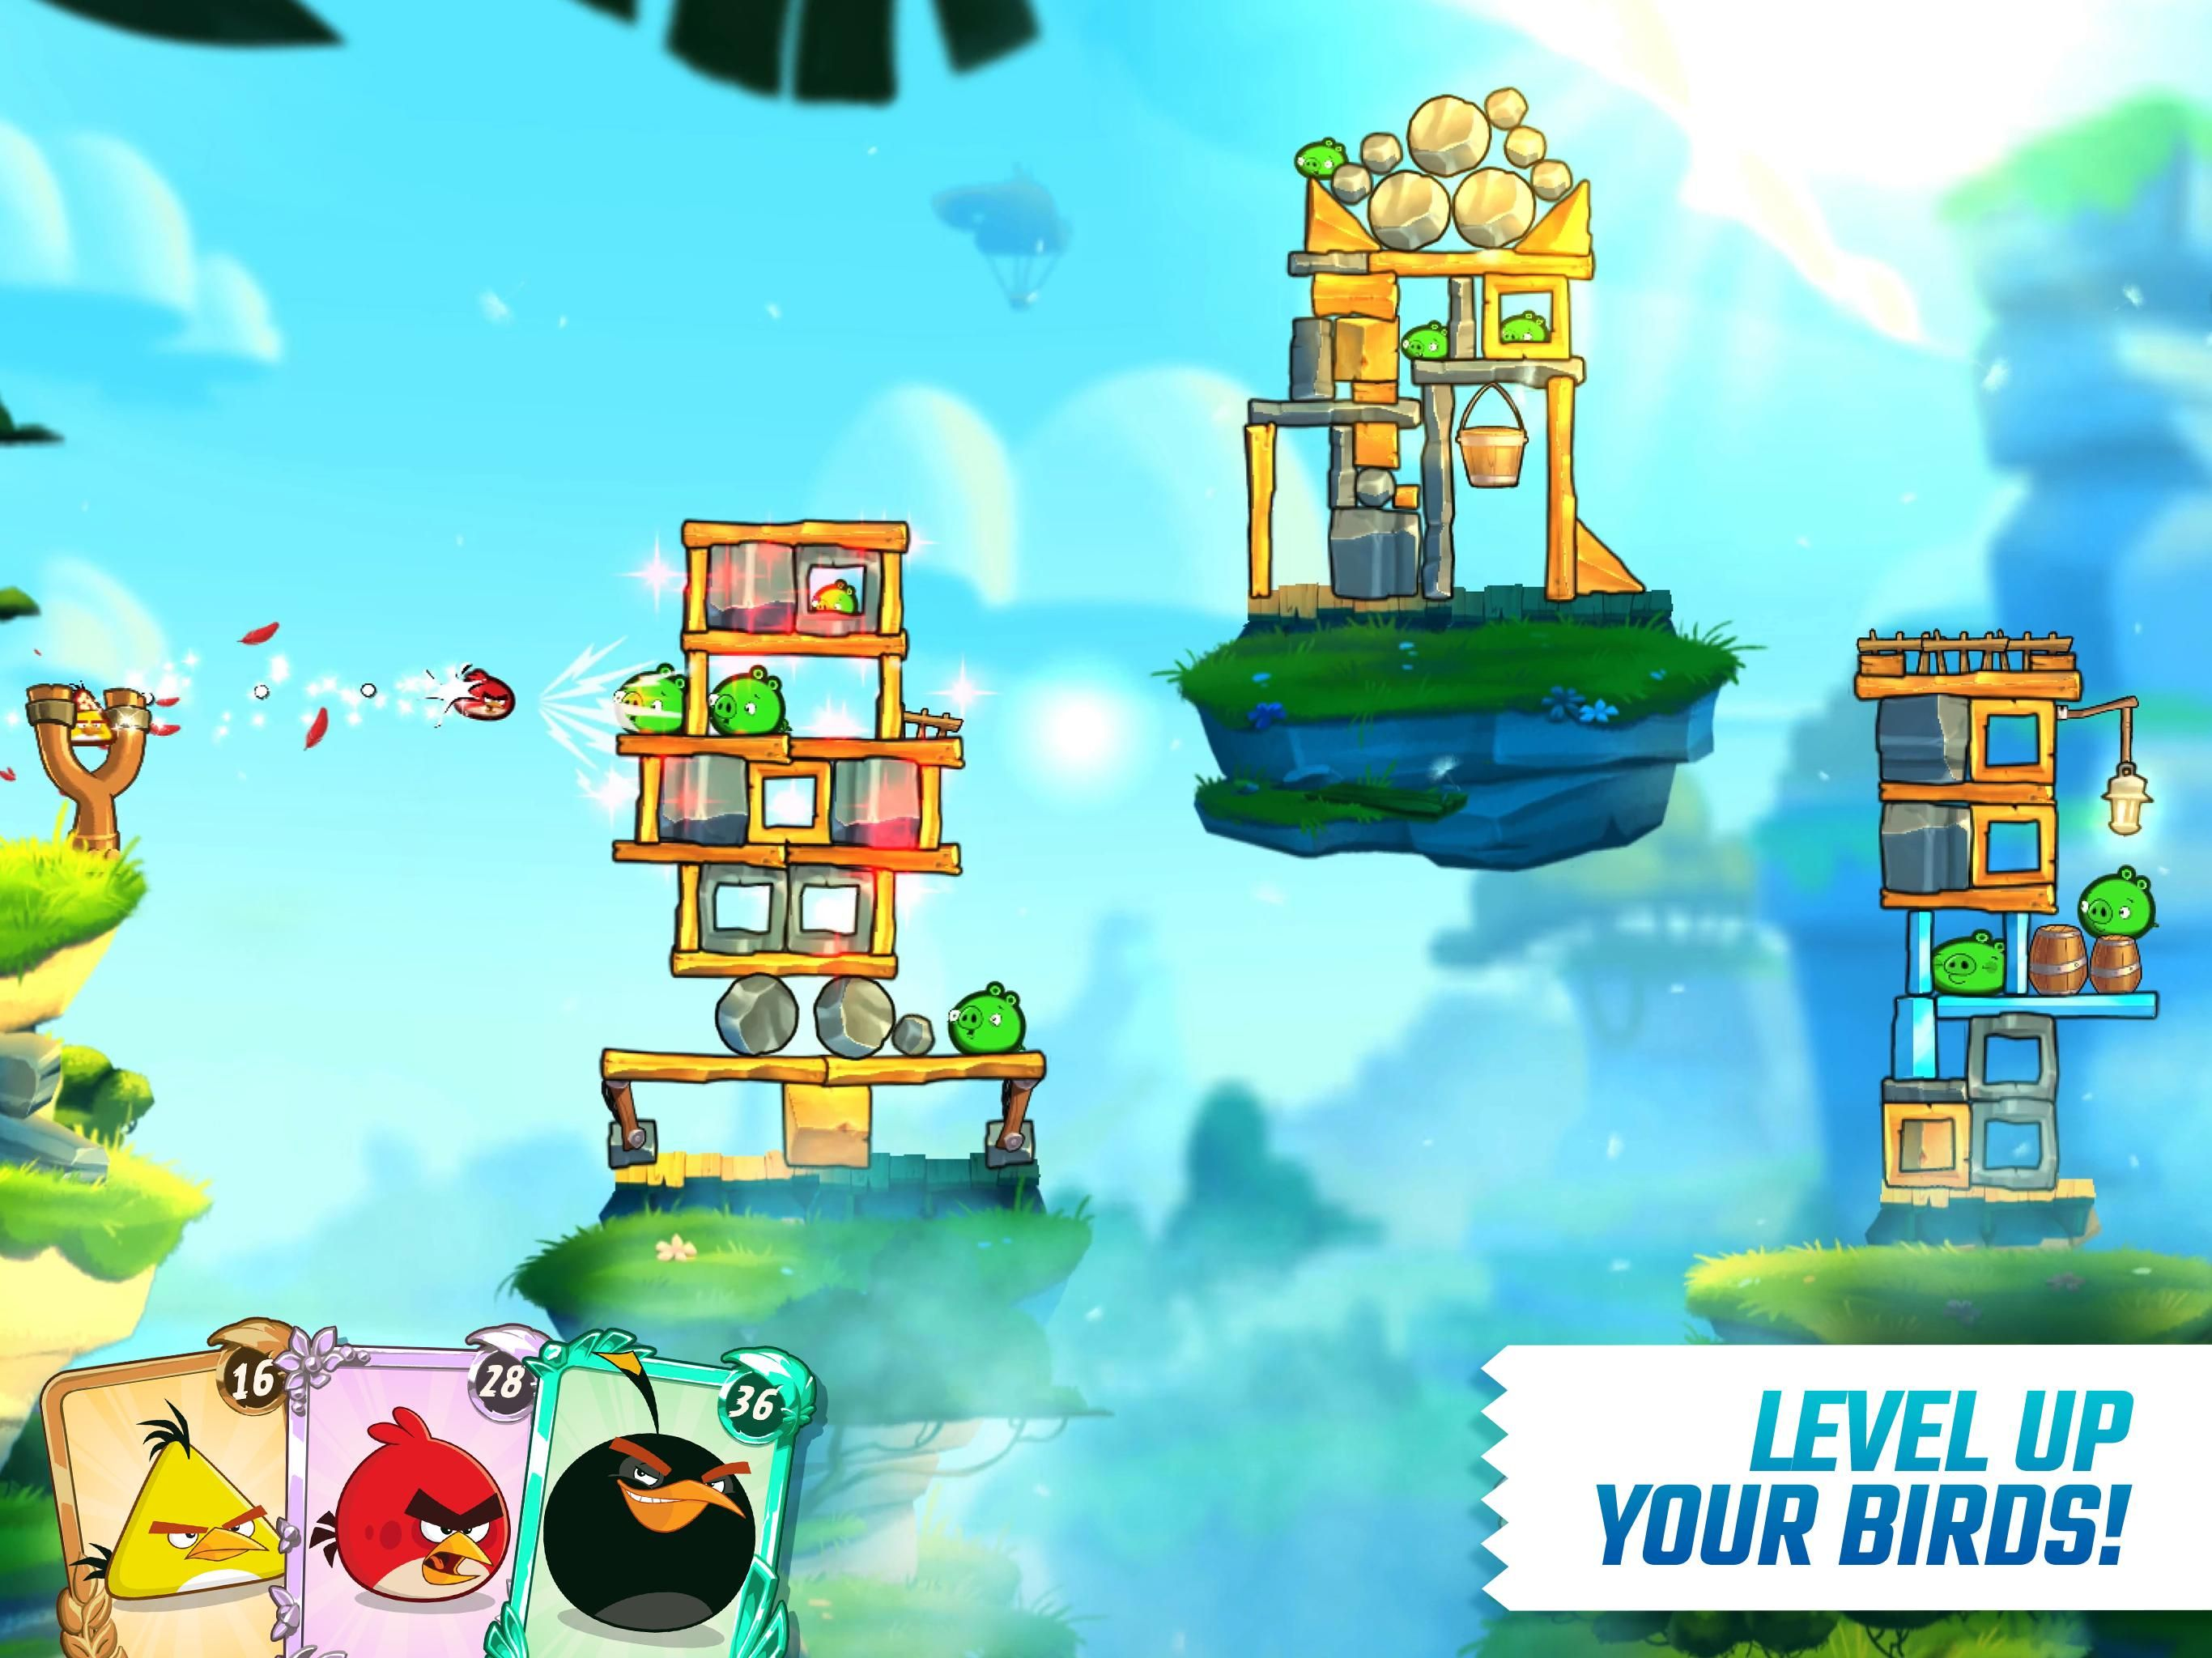 Download Angry Birds 2 Mod APK (Unlimited Money) Free for